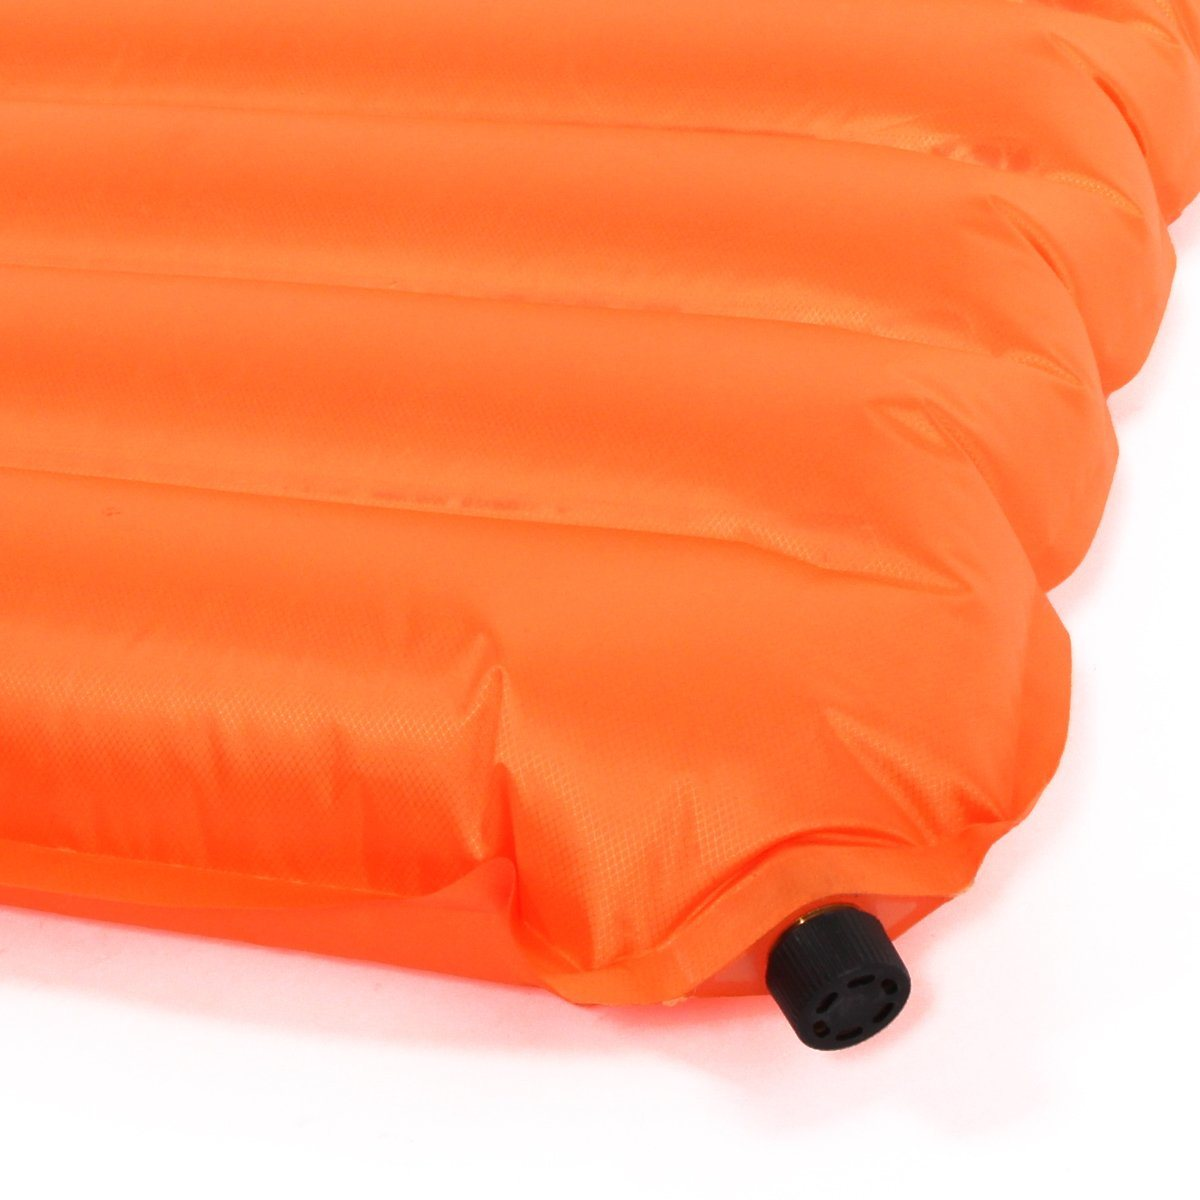 Ultralight Sleeping Pad - Ultra-Compact for Backpacking, Camping, Travel